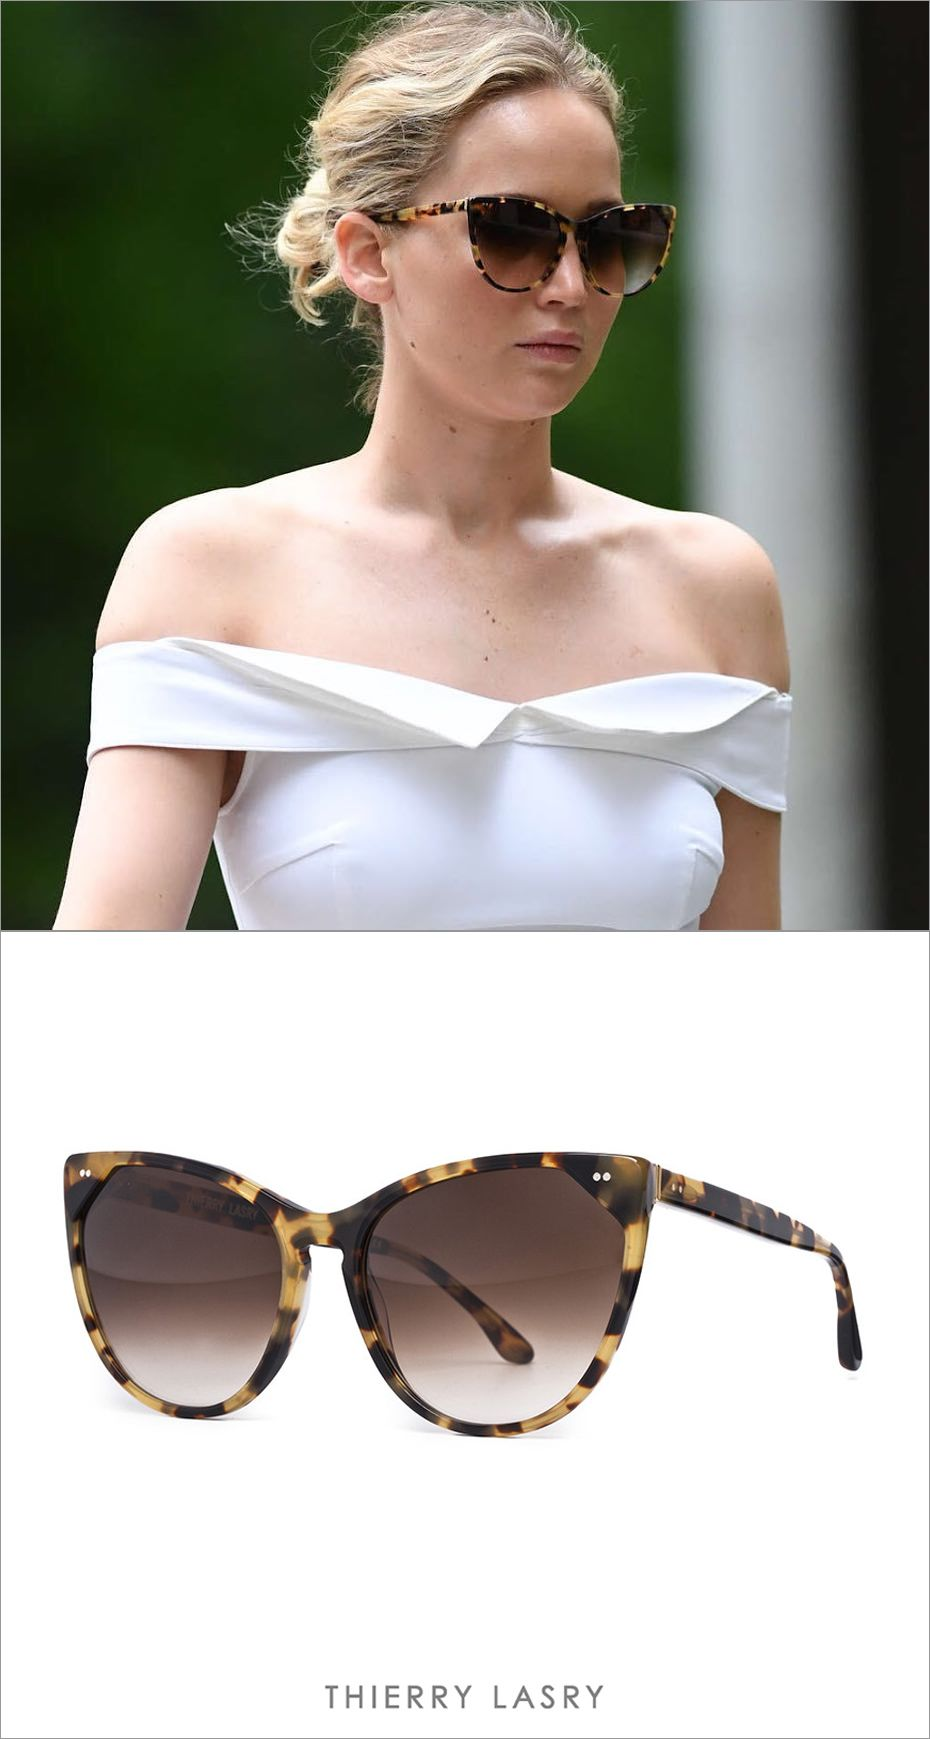 Actress Jennifer Lawrence spotted wearing the Thierry Lasry ...